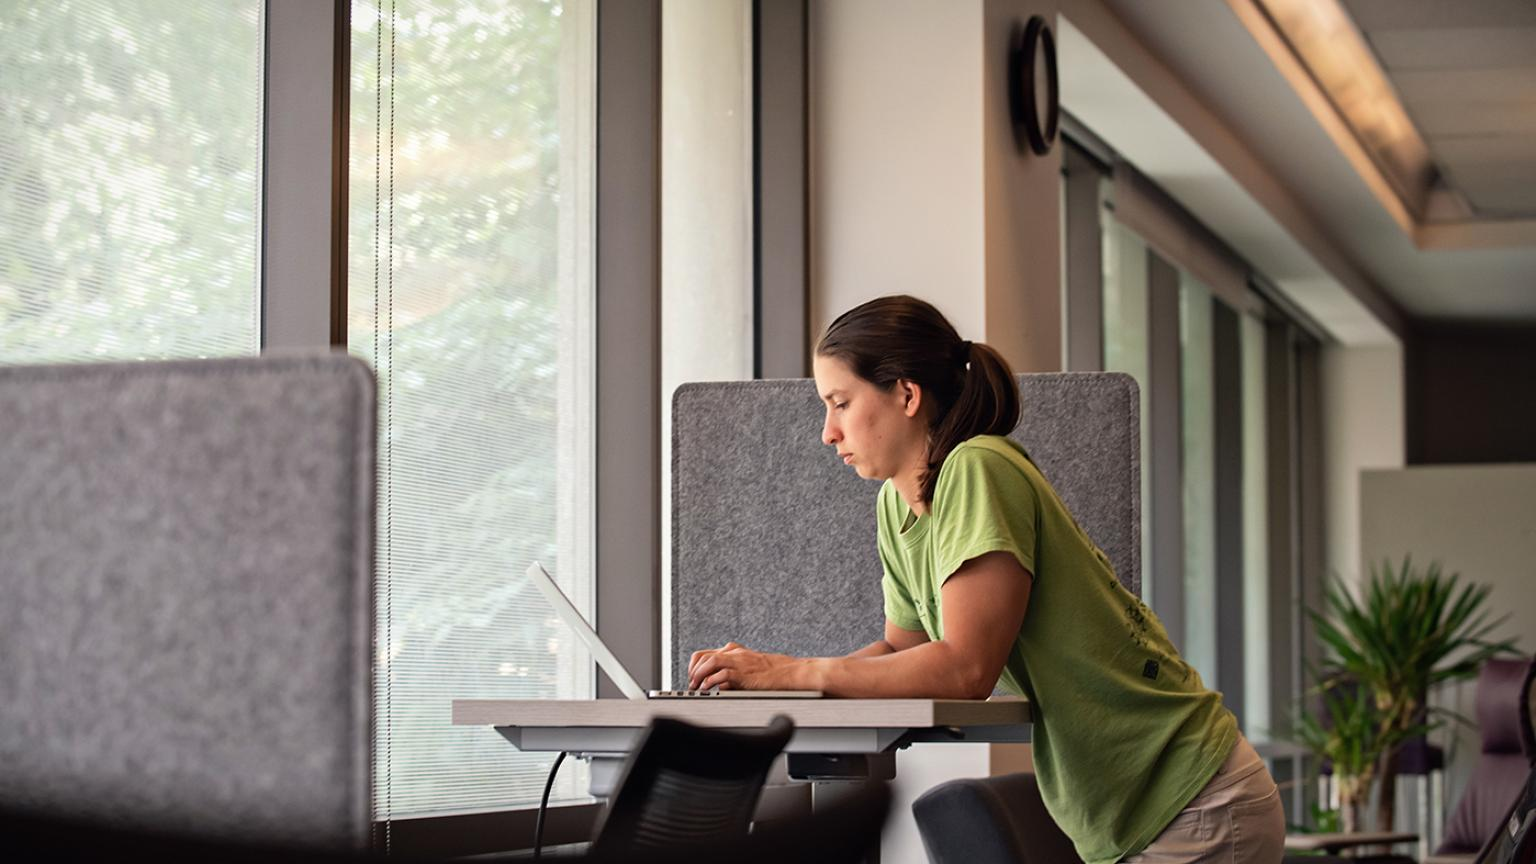 Woman working at a standing desk in front of a window in the OGPS lounge